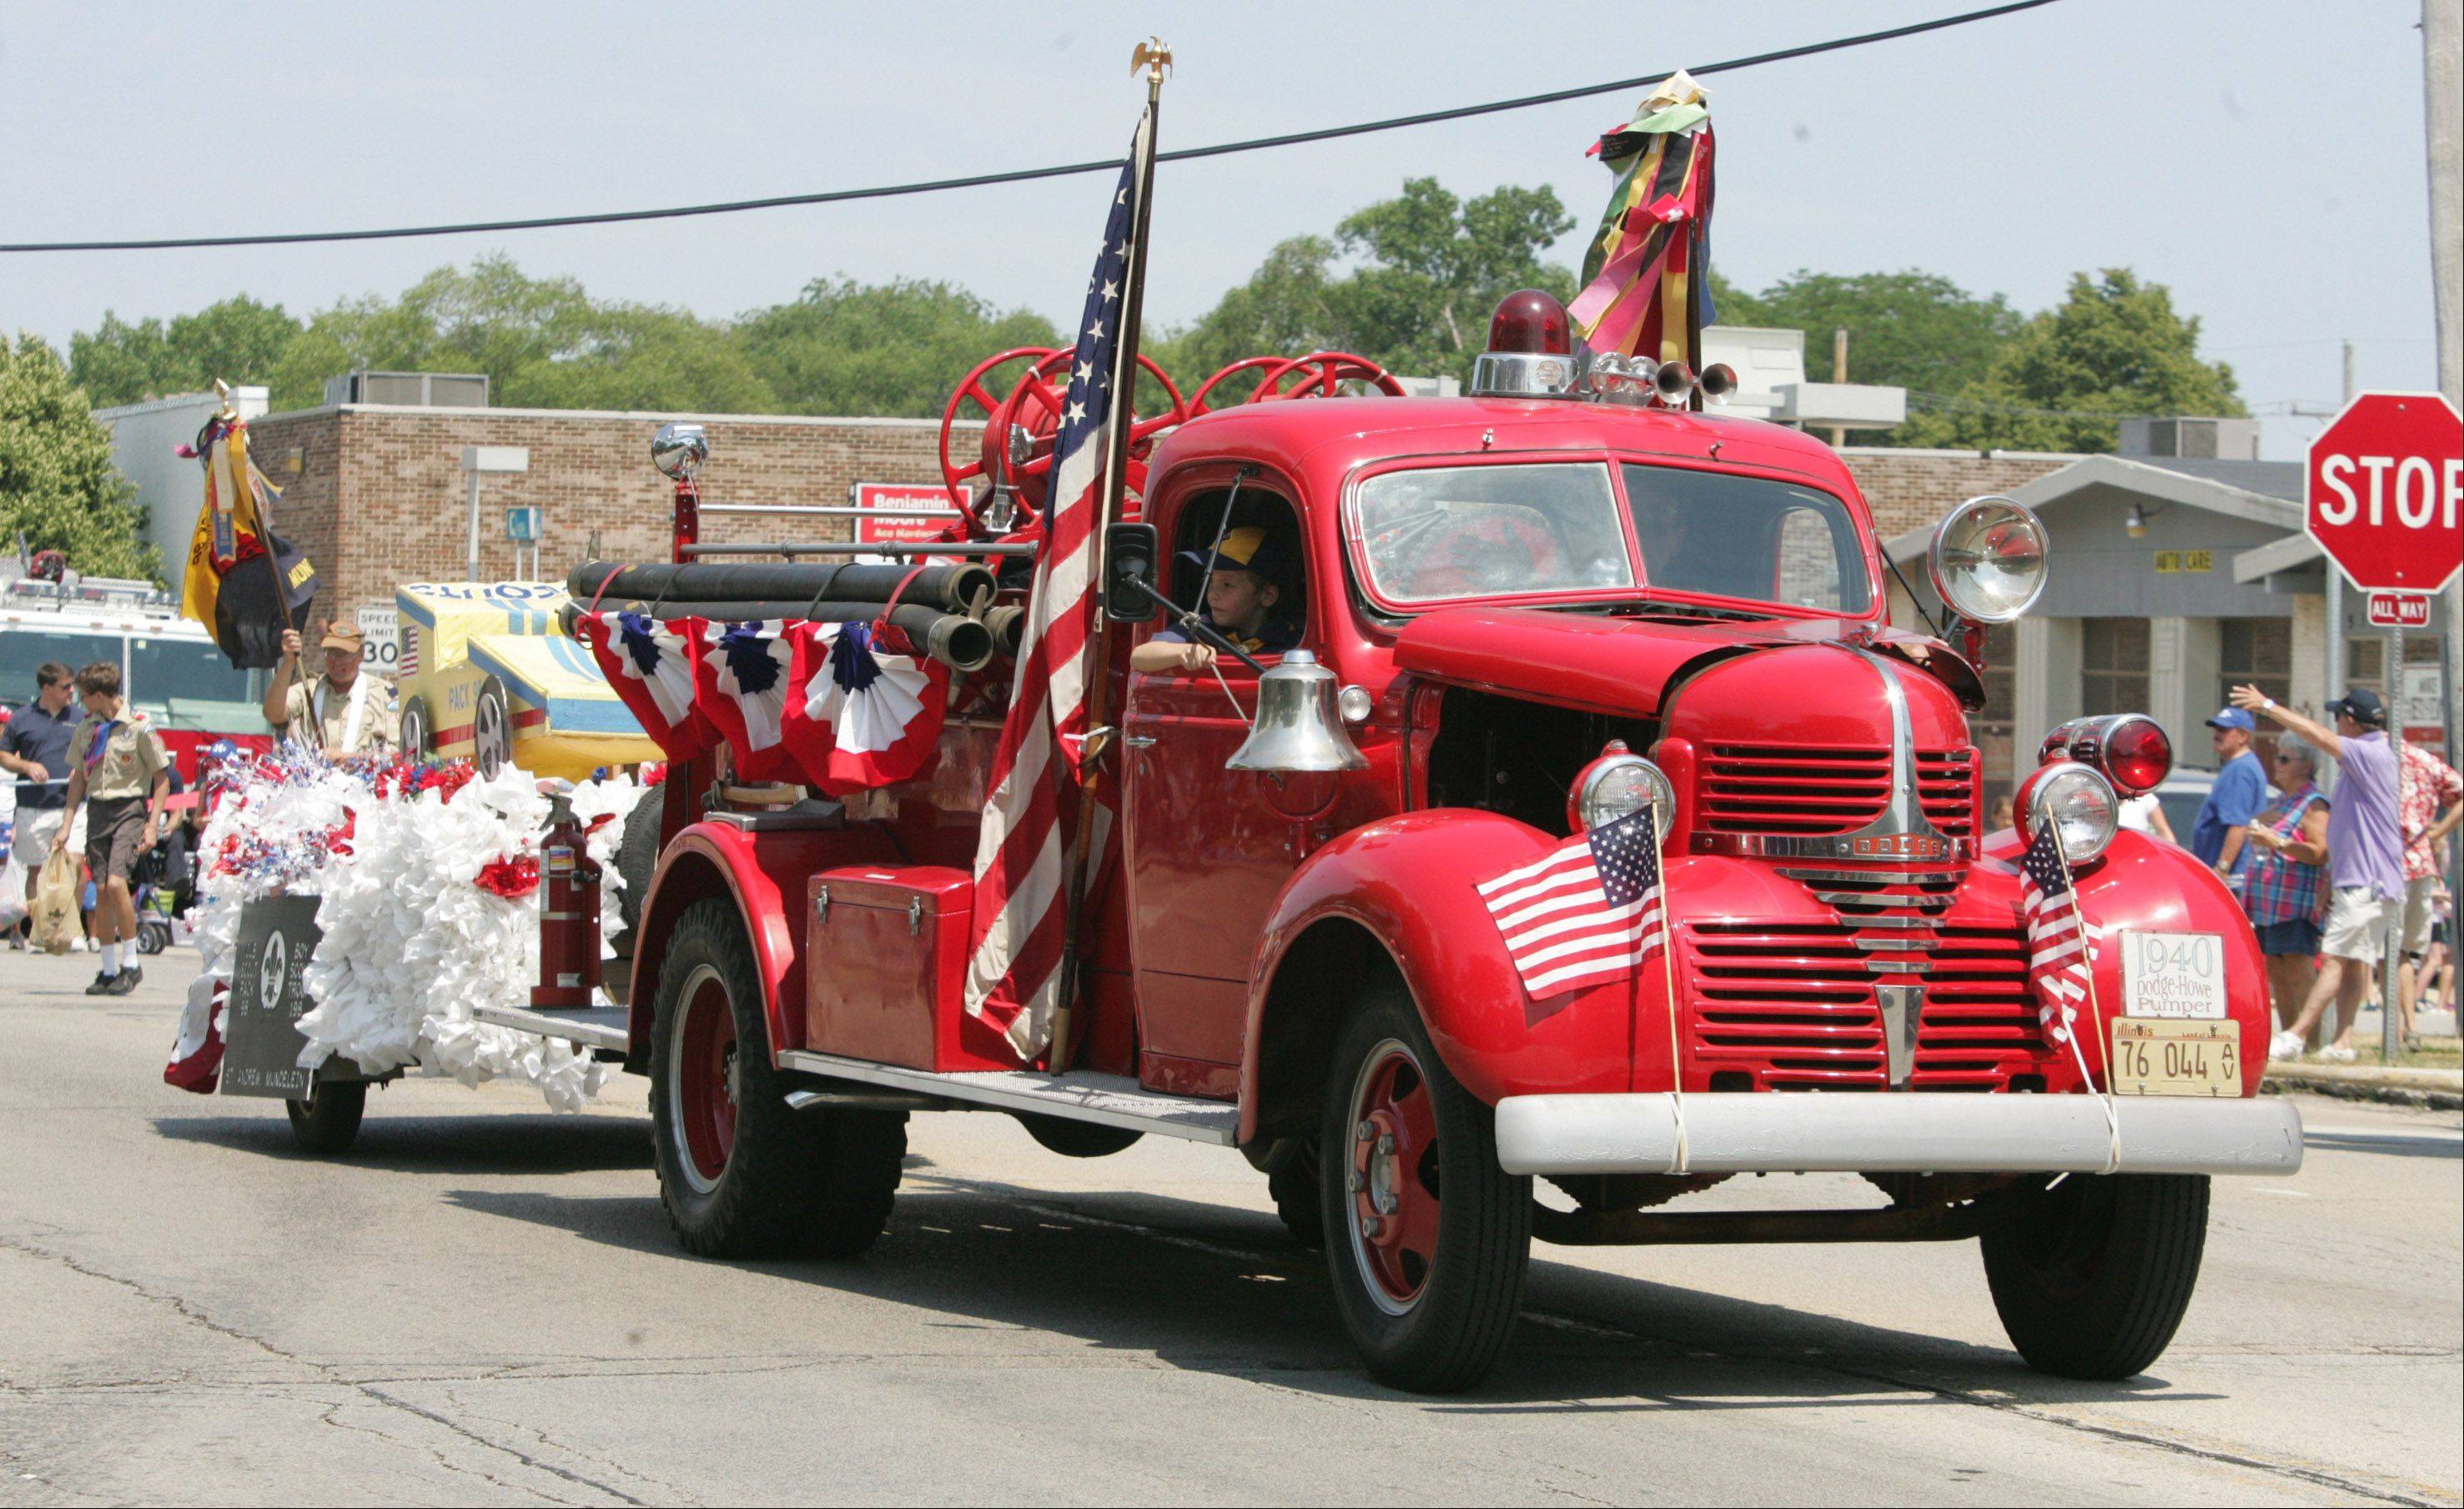 A 1940 Dodge-Howe Pumper fire truck pulls the float for Cub Scouts Pack 98 and Boy Scouts Troop 198 during last year's Mundelein Community Days parade.